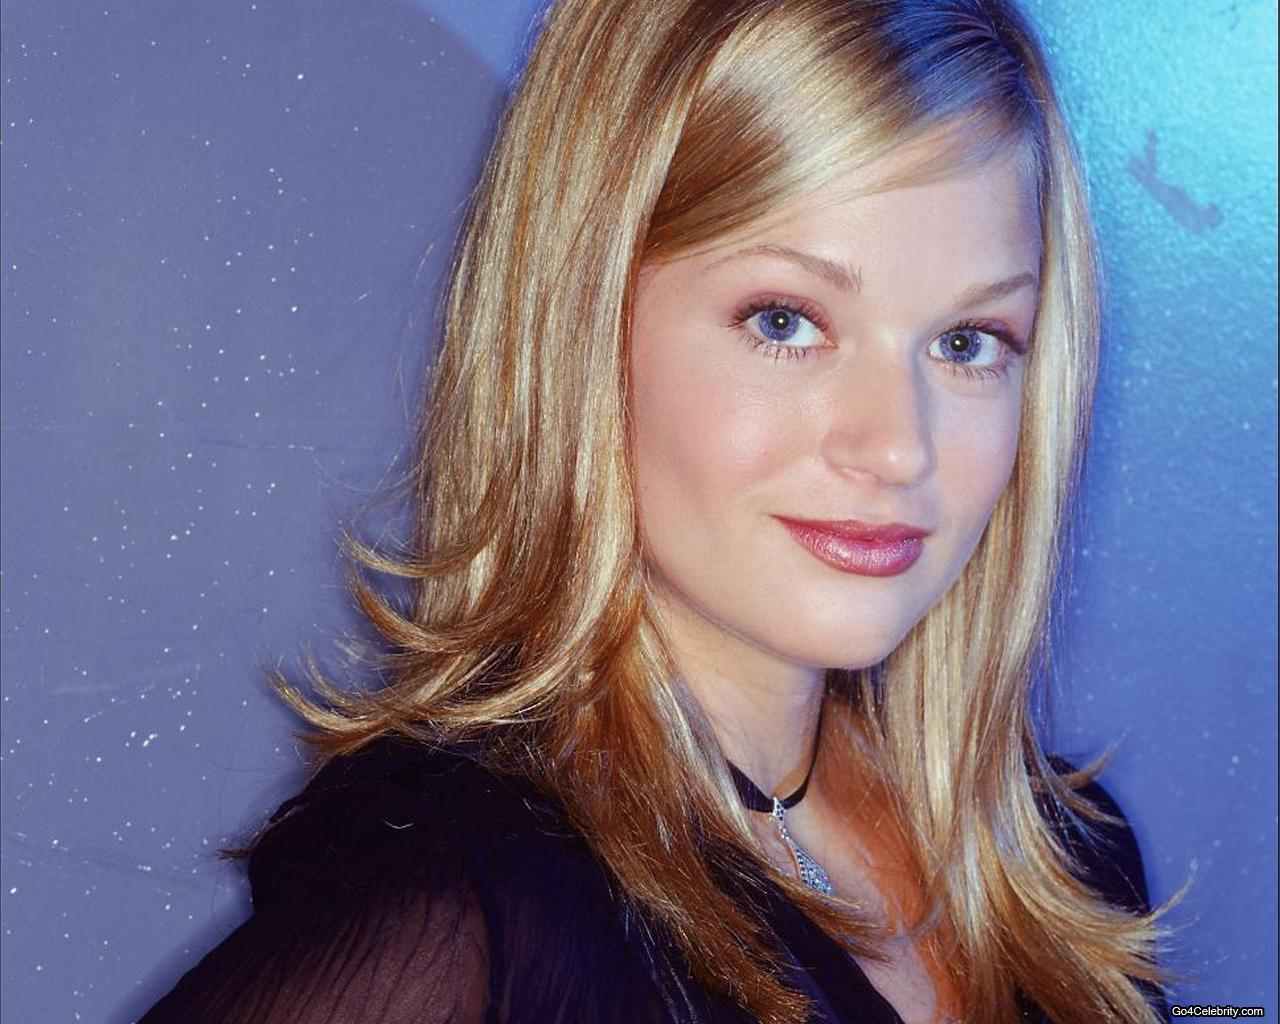 Andrea J Cook free wallpapers: a.j. cook wallpapers